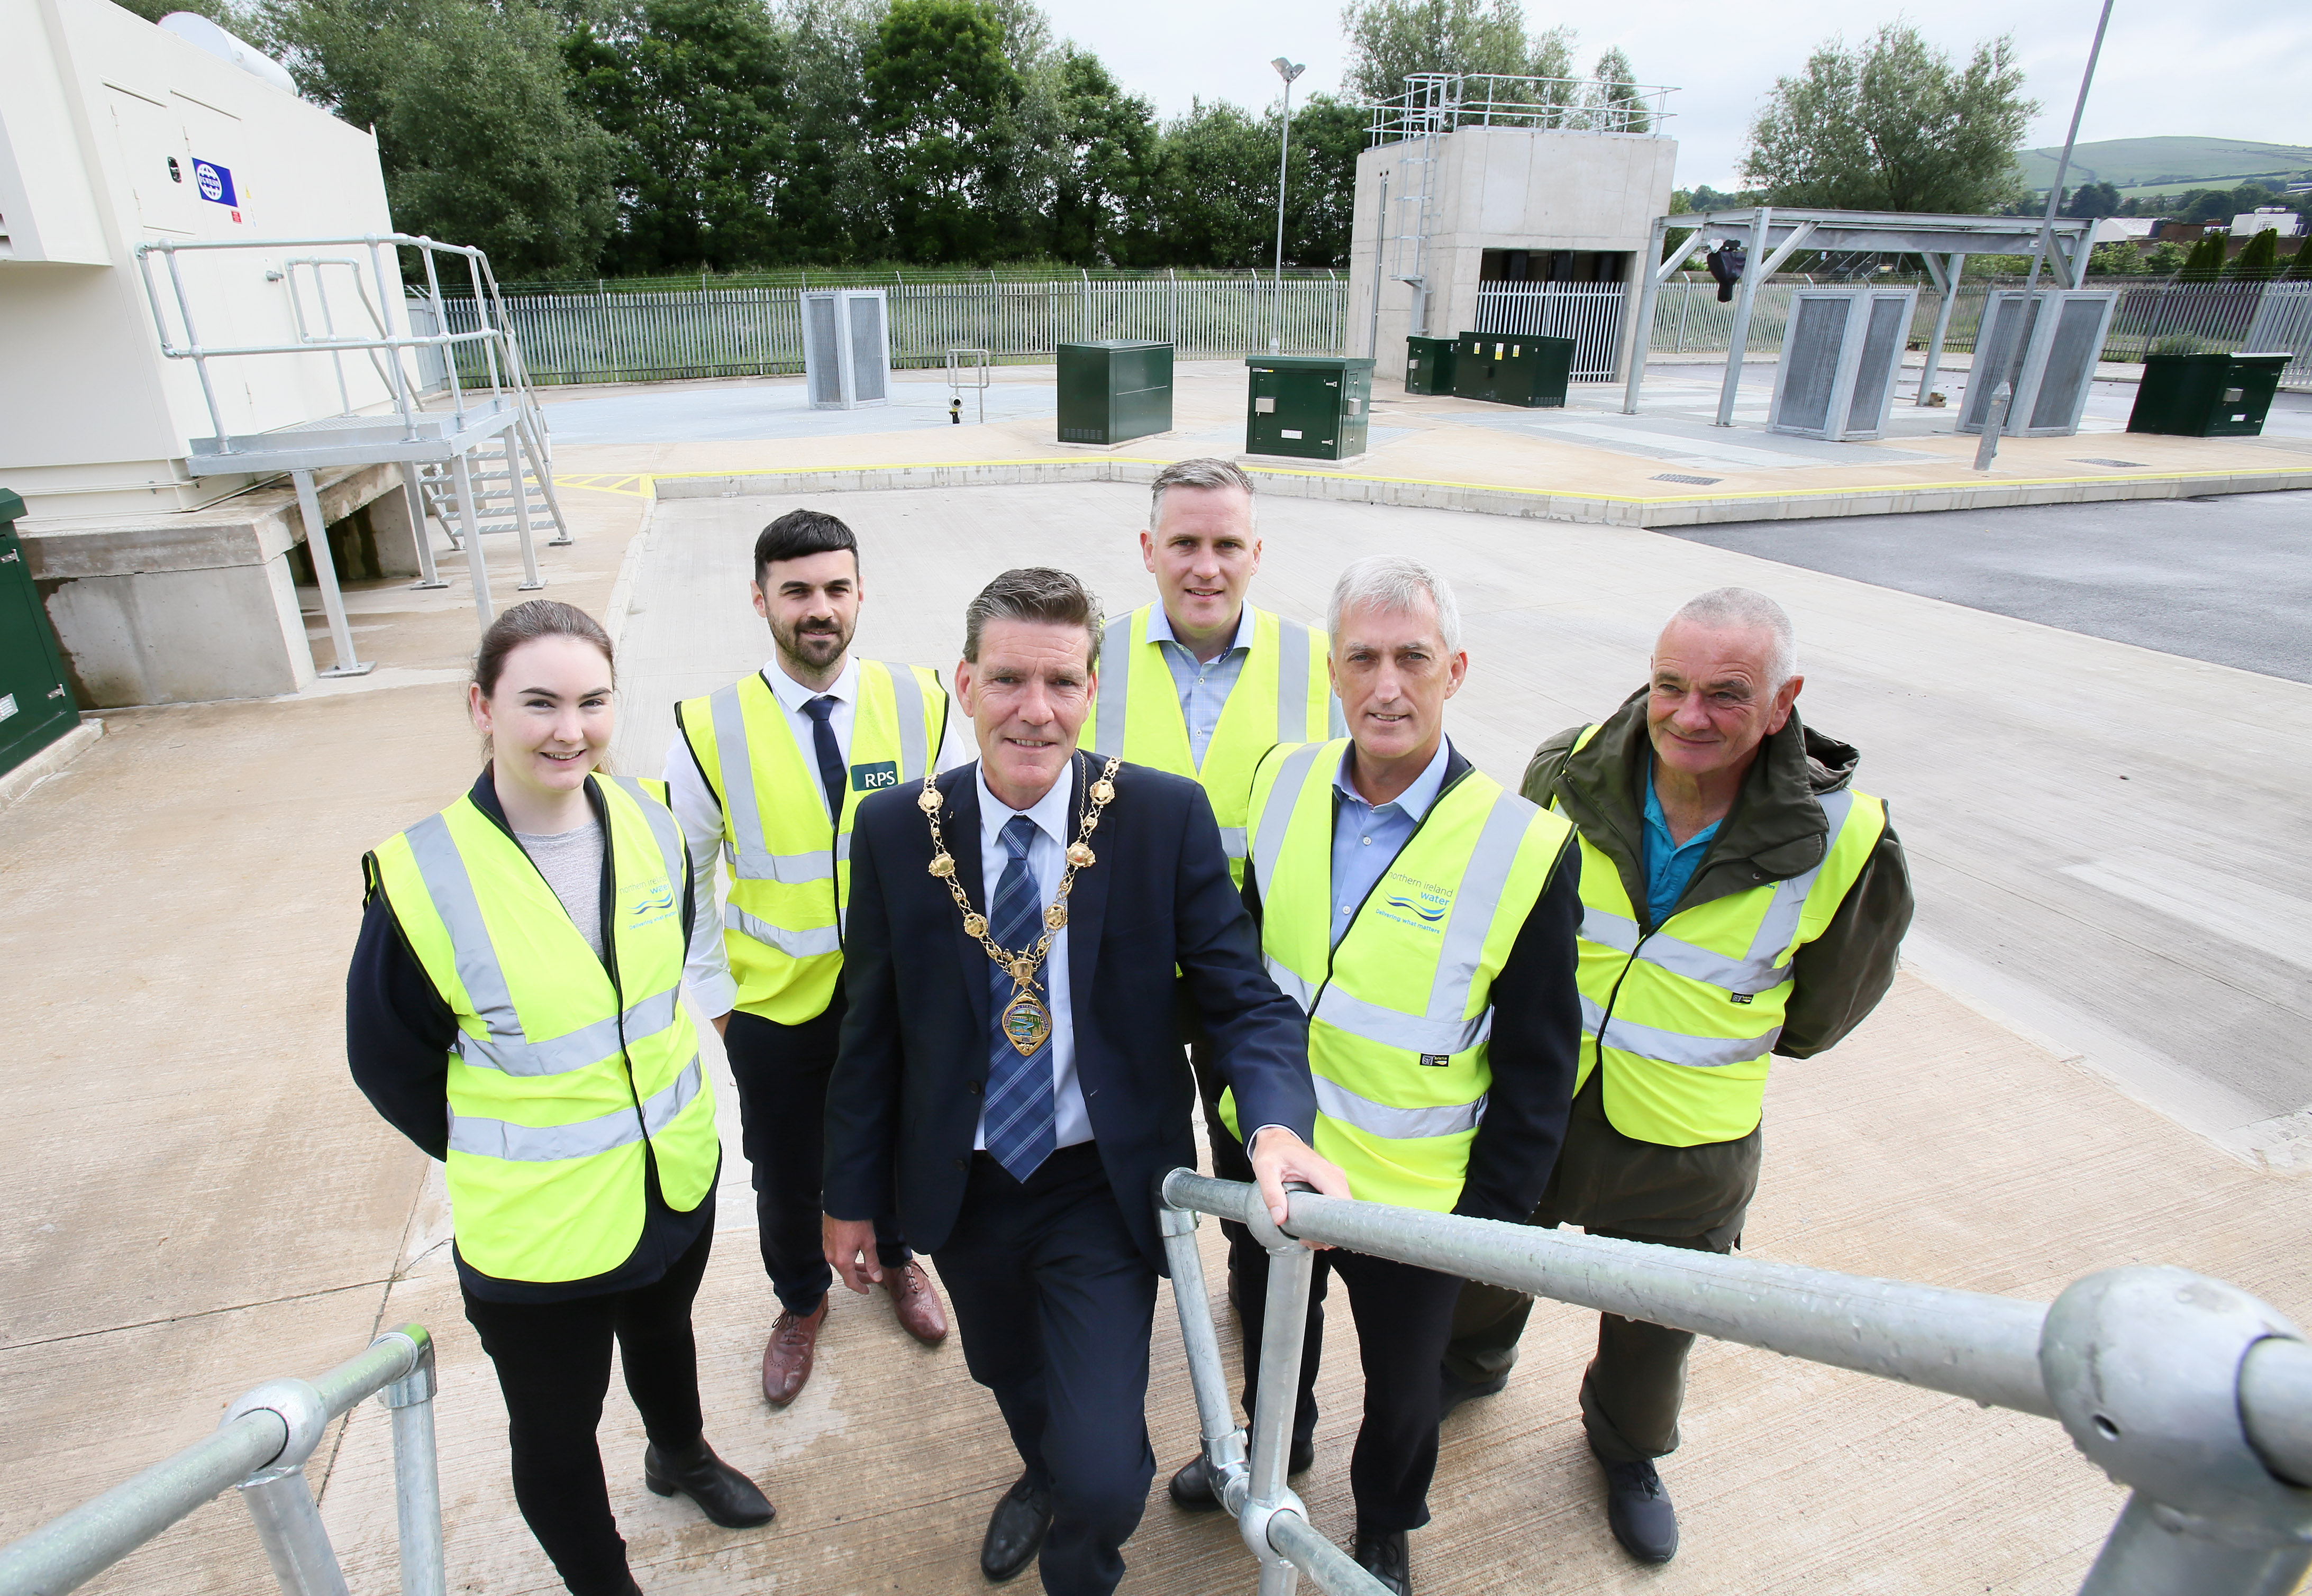 Catherine Watkins NI Water Project Manager, Mark McEvoy RPS, Mayor of Derry City & Strabane District Council- Councillor John Boyle, Gerard McColgan Dawson WAM, Eamon McManus and John Curran (both NI Water) take a tour of the upgraded Pumping Station.